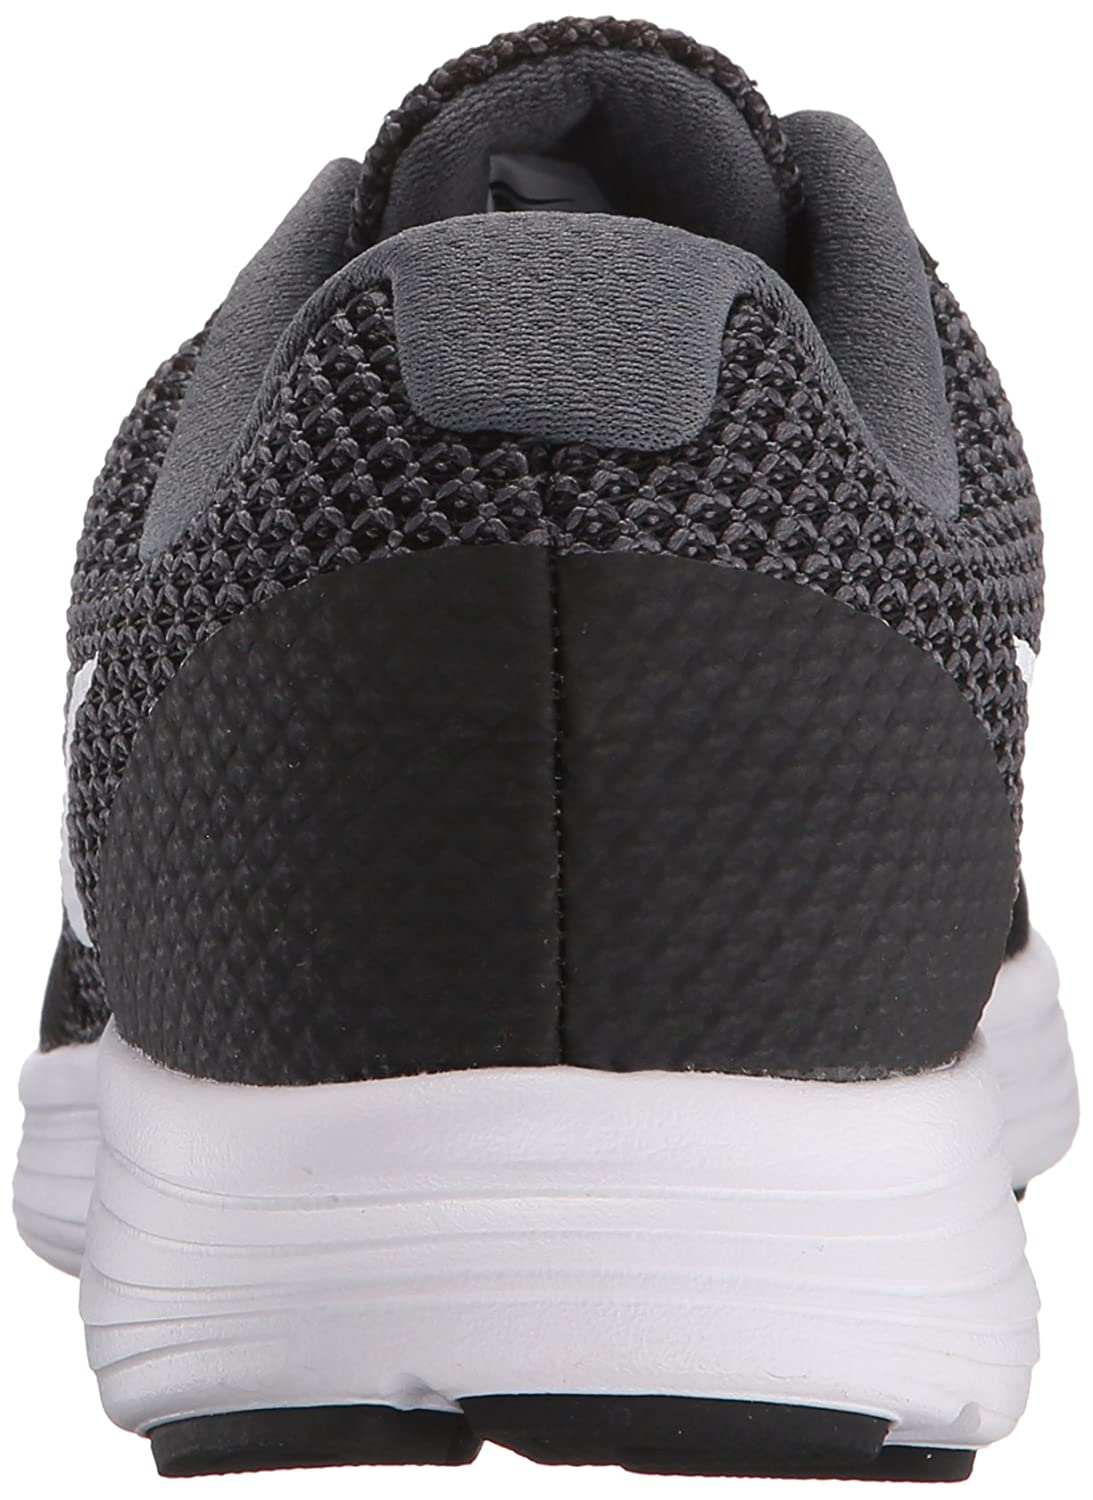 NIKE B010RRY93Y Women's Revolution 3 Running Shoe B010RRY93Y NIKE 5.5 C/D US|Dark Grey/White/Black e364f3